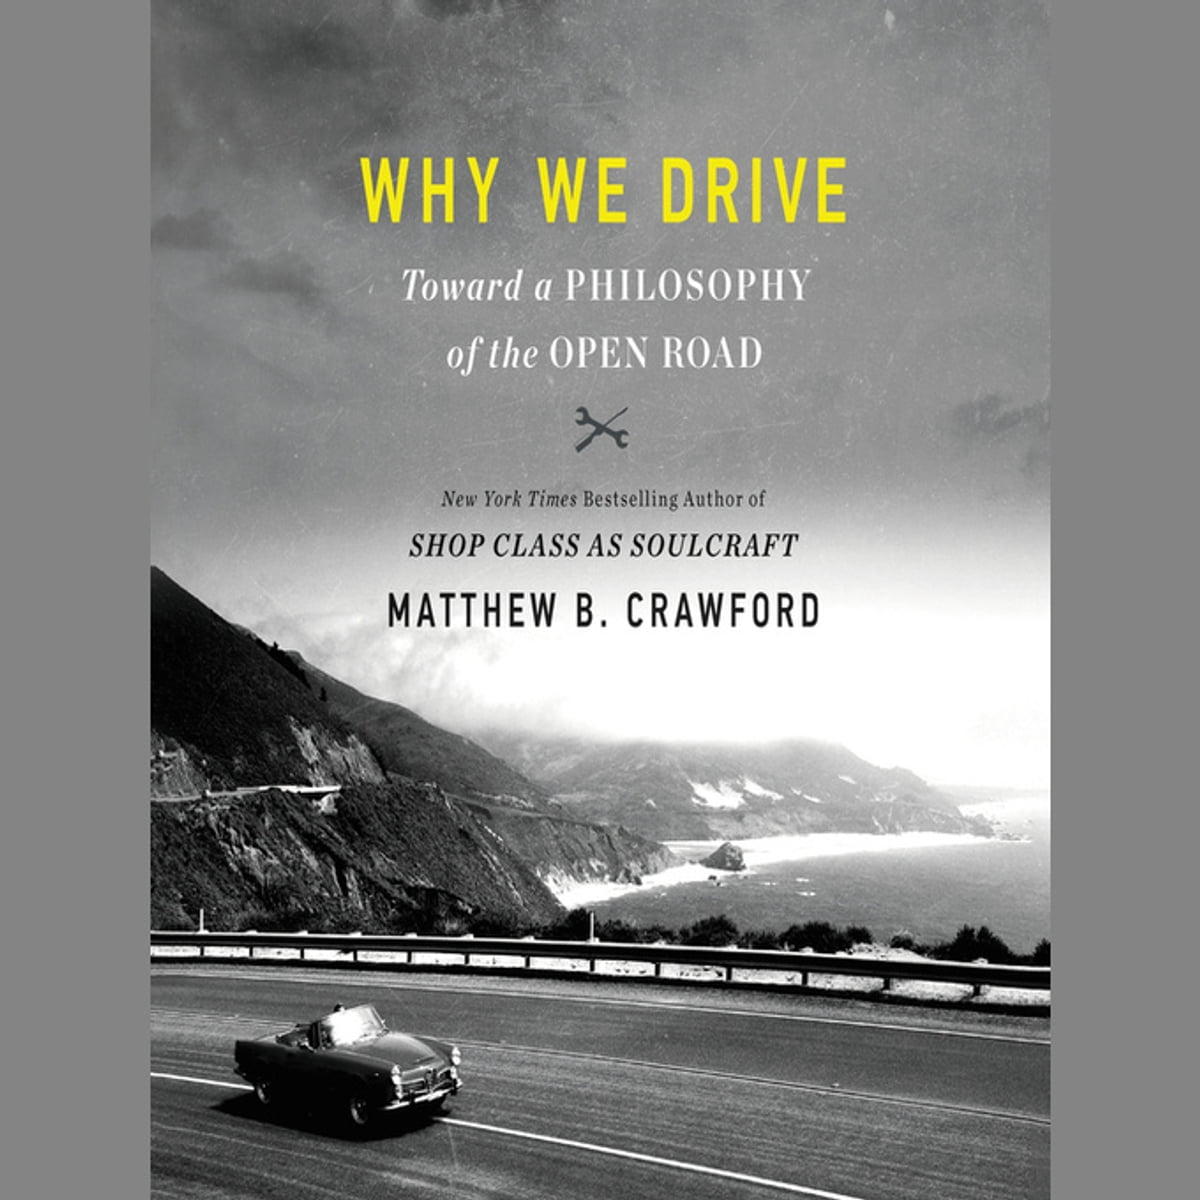 Why We Drive Audiobook by Matthew B. Crawford - 9780063015685 | Rakuten Kobo United States